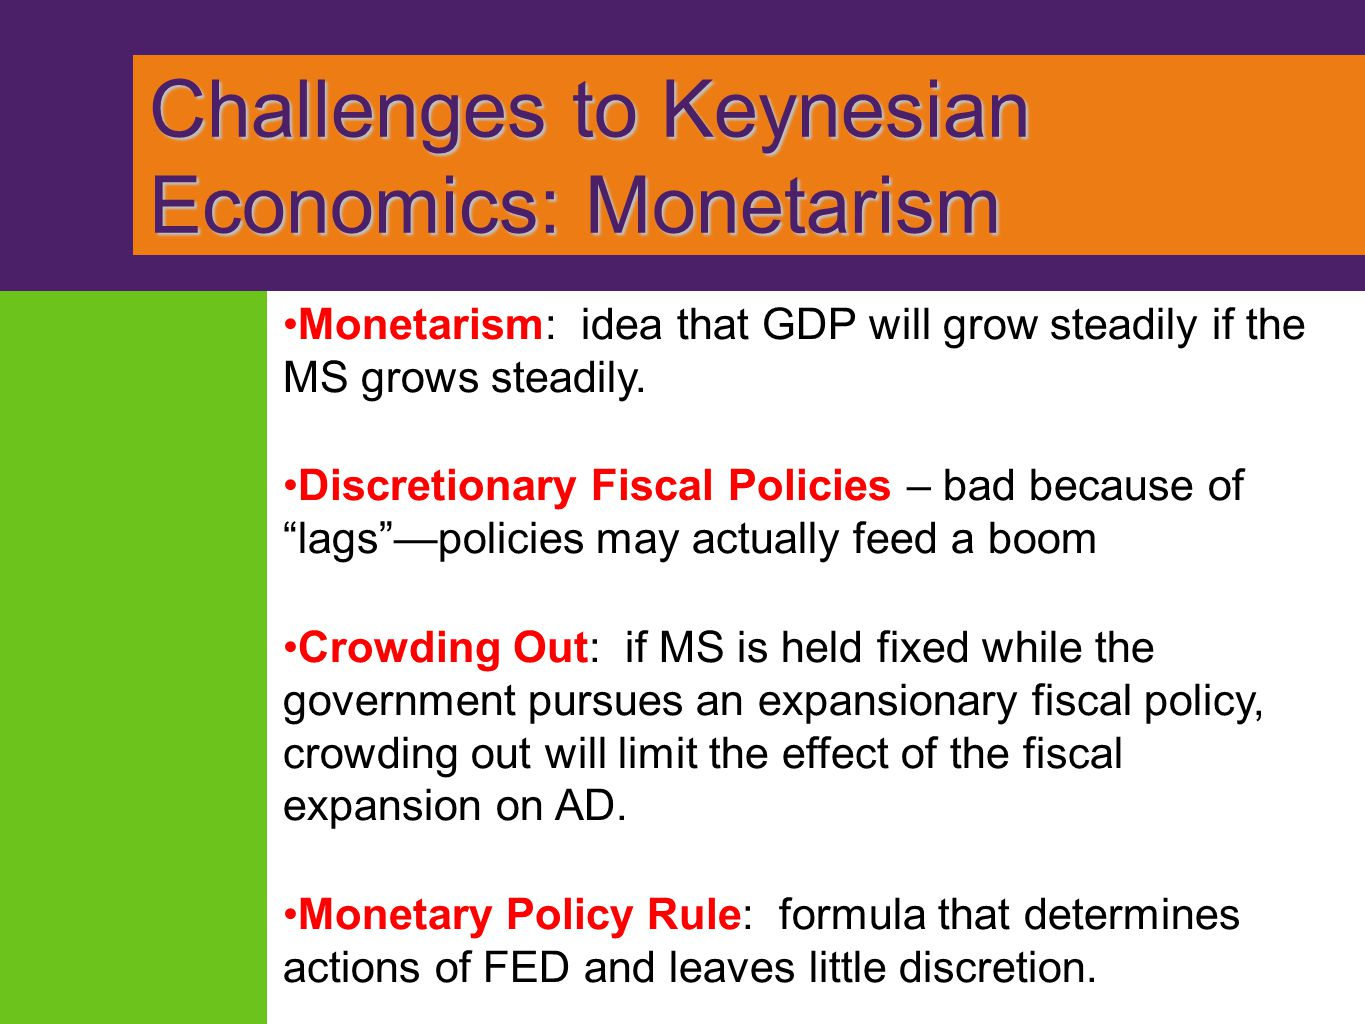 Challenges to Keynesian Economics: Monetarism